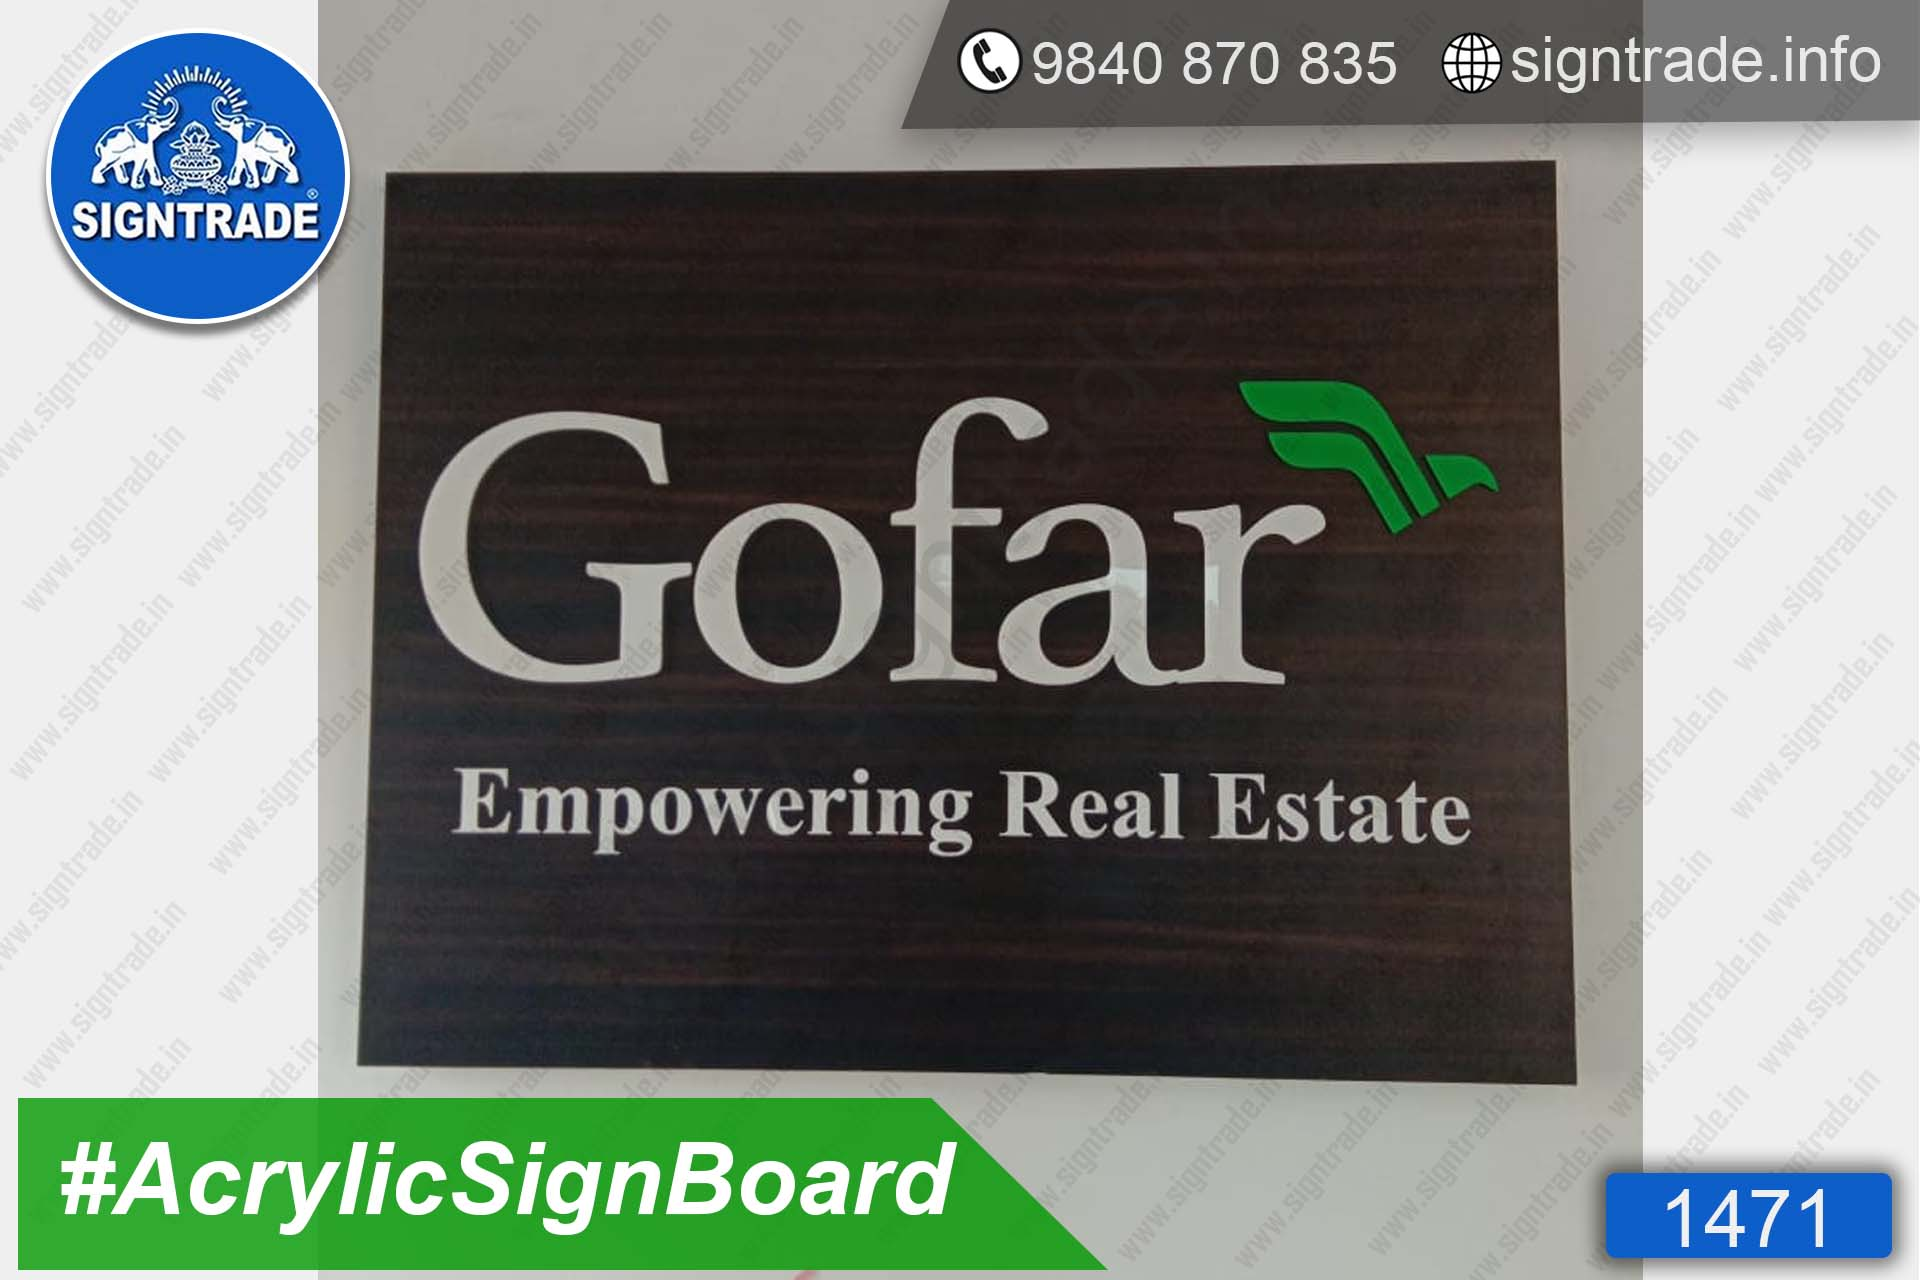 Gofar Empowering Real Estate - Acrylic Letter Sign Board - SIGNTRADE - Acrylic Letter Sign Board Manufacture in Chennai